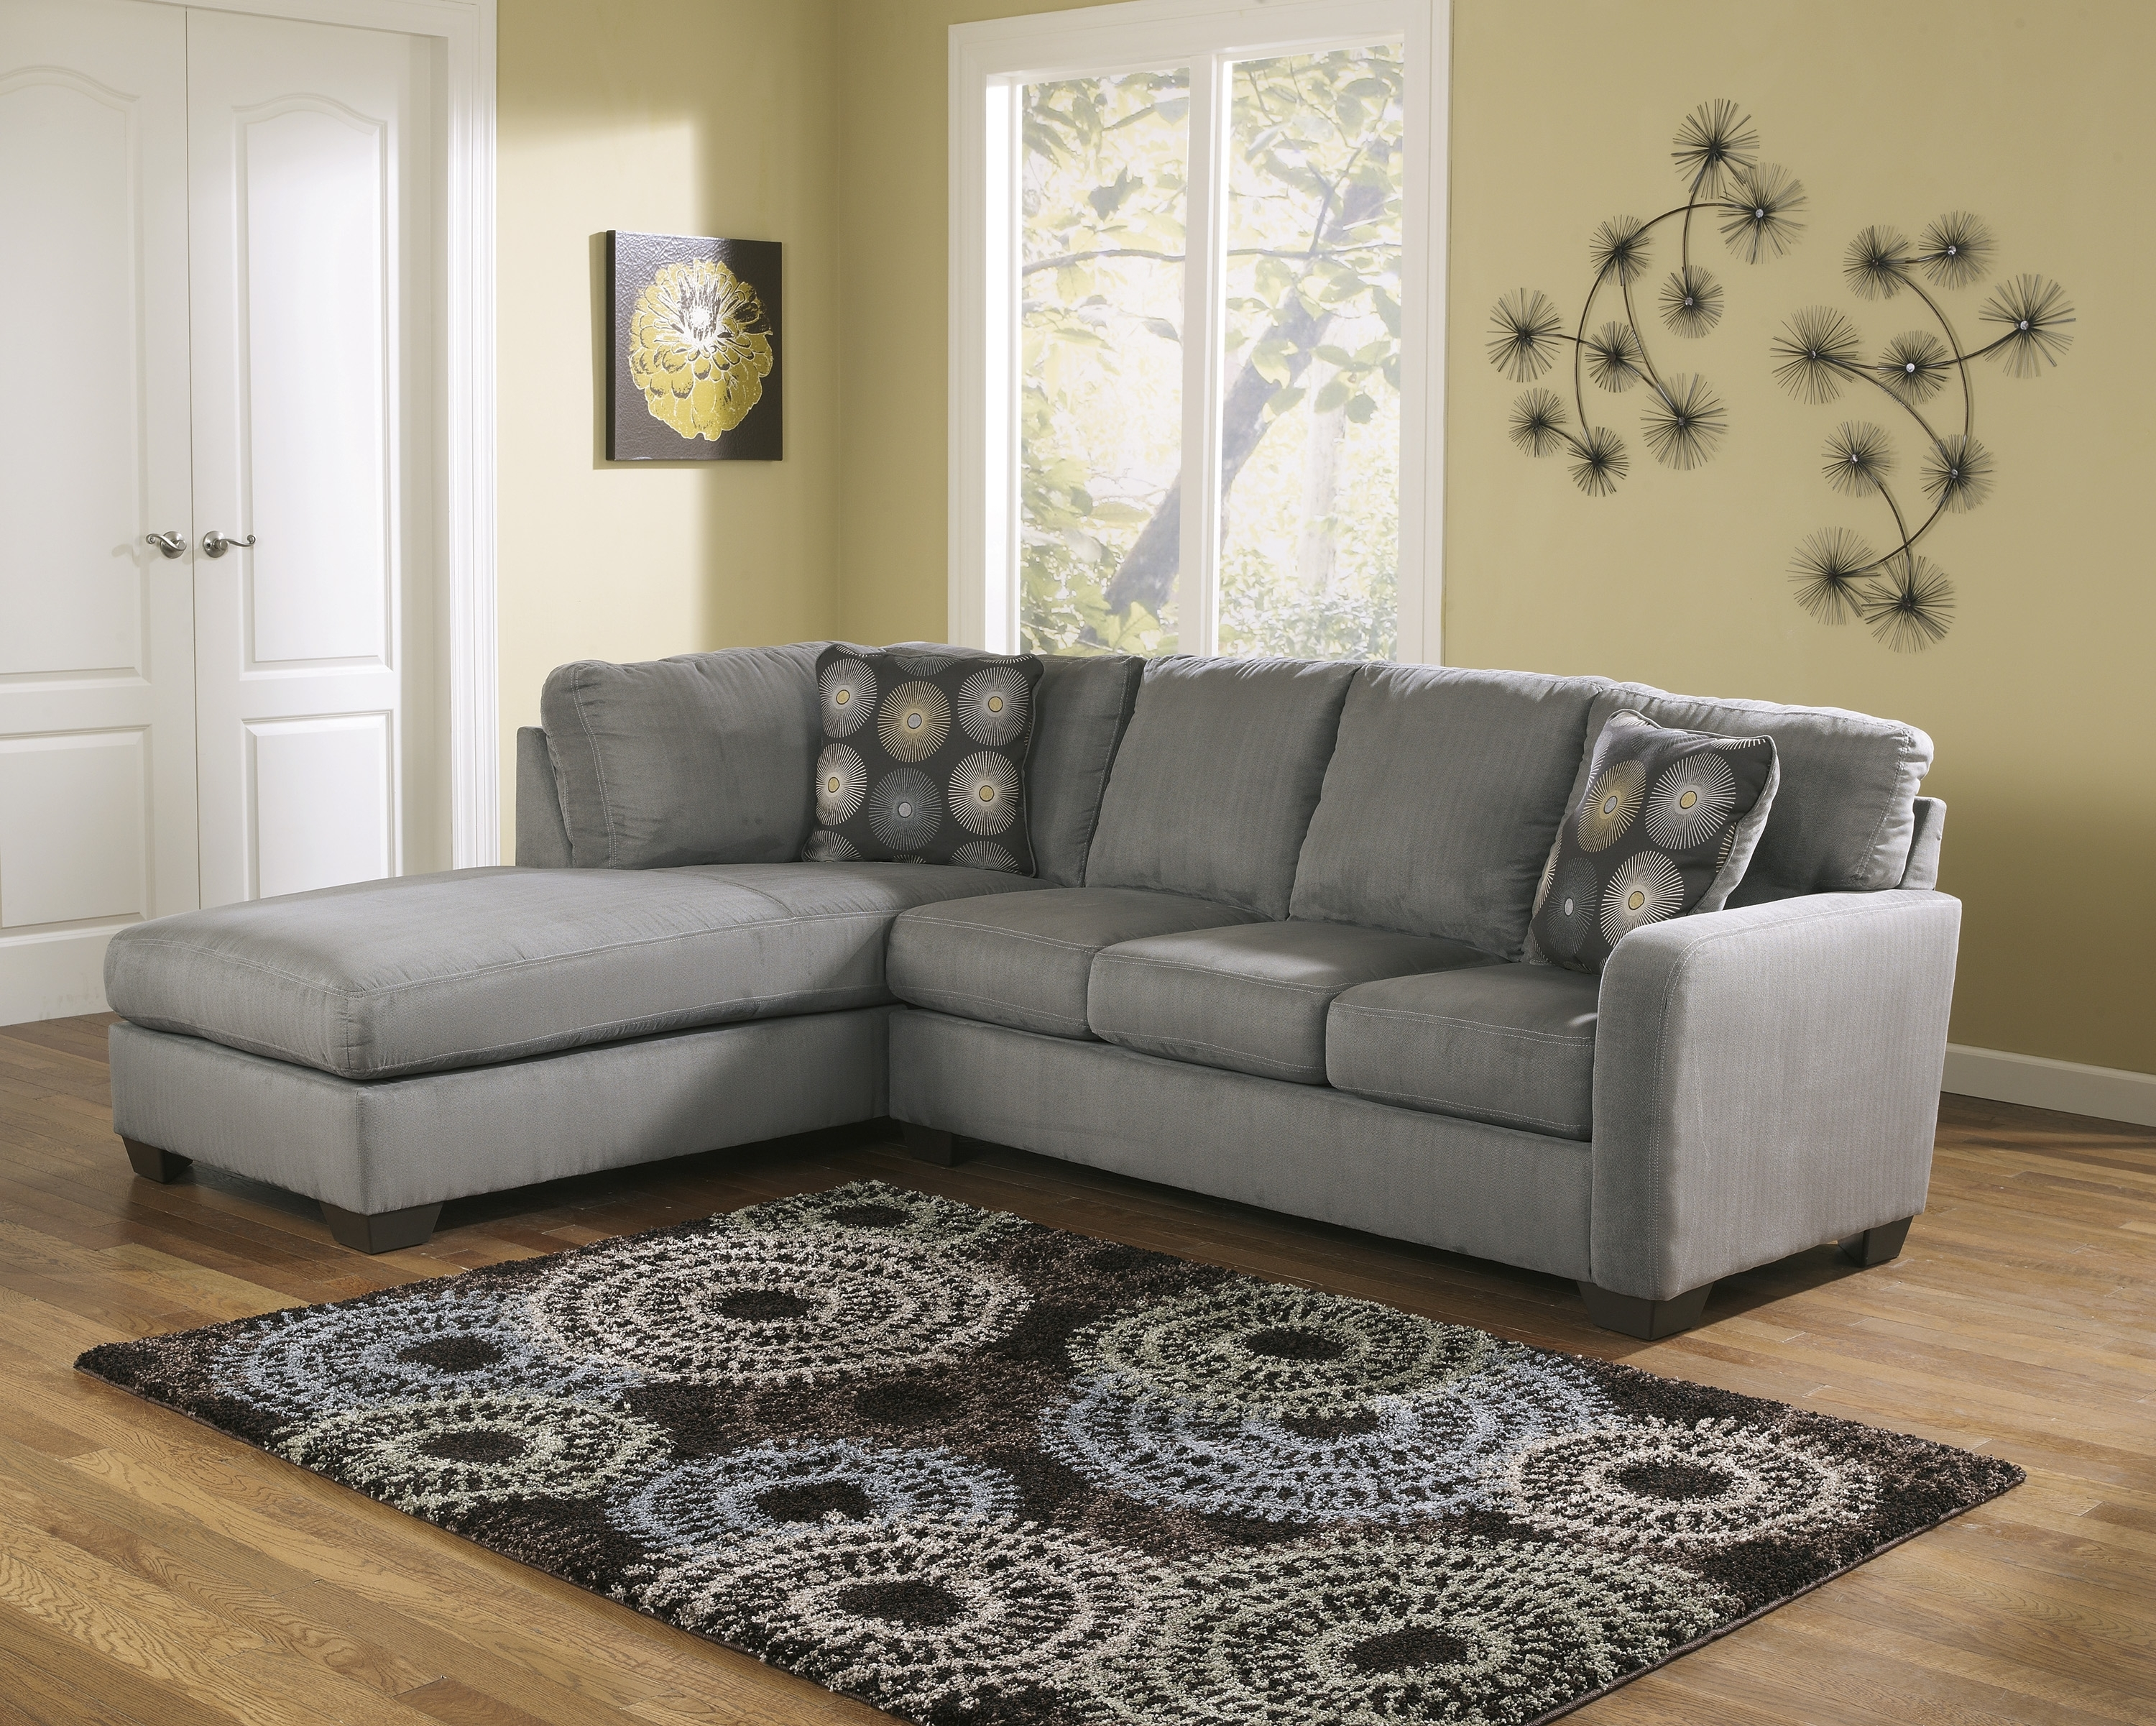 2019 Wichita Ks Sectional Sofas Intended For Cuisine: Rsfchaisesectionalashley Furniture In Wichita Ks Rsf (View 5 of 20)